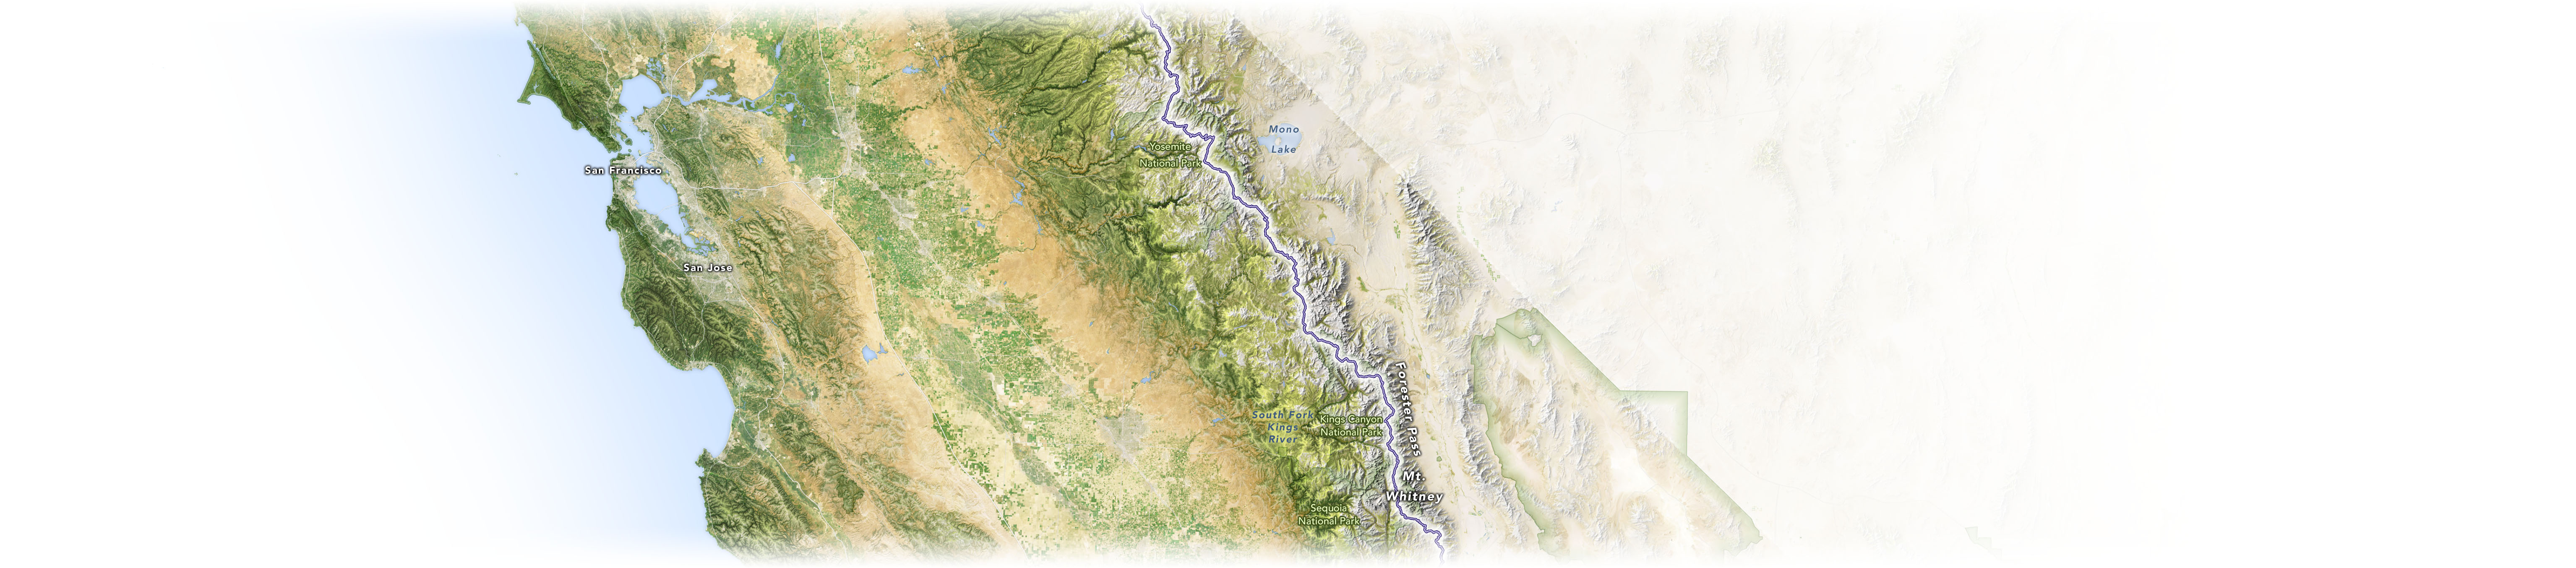 A map of the Pacific Crest Trail and nearby landmarks in central California.